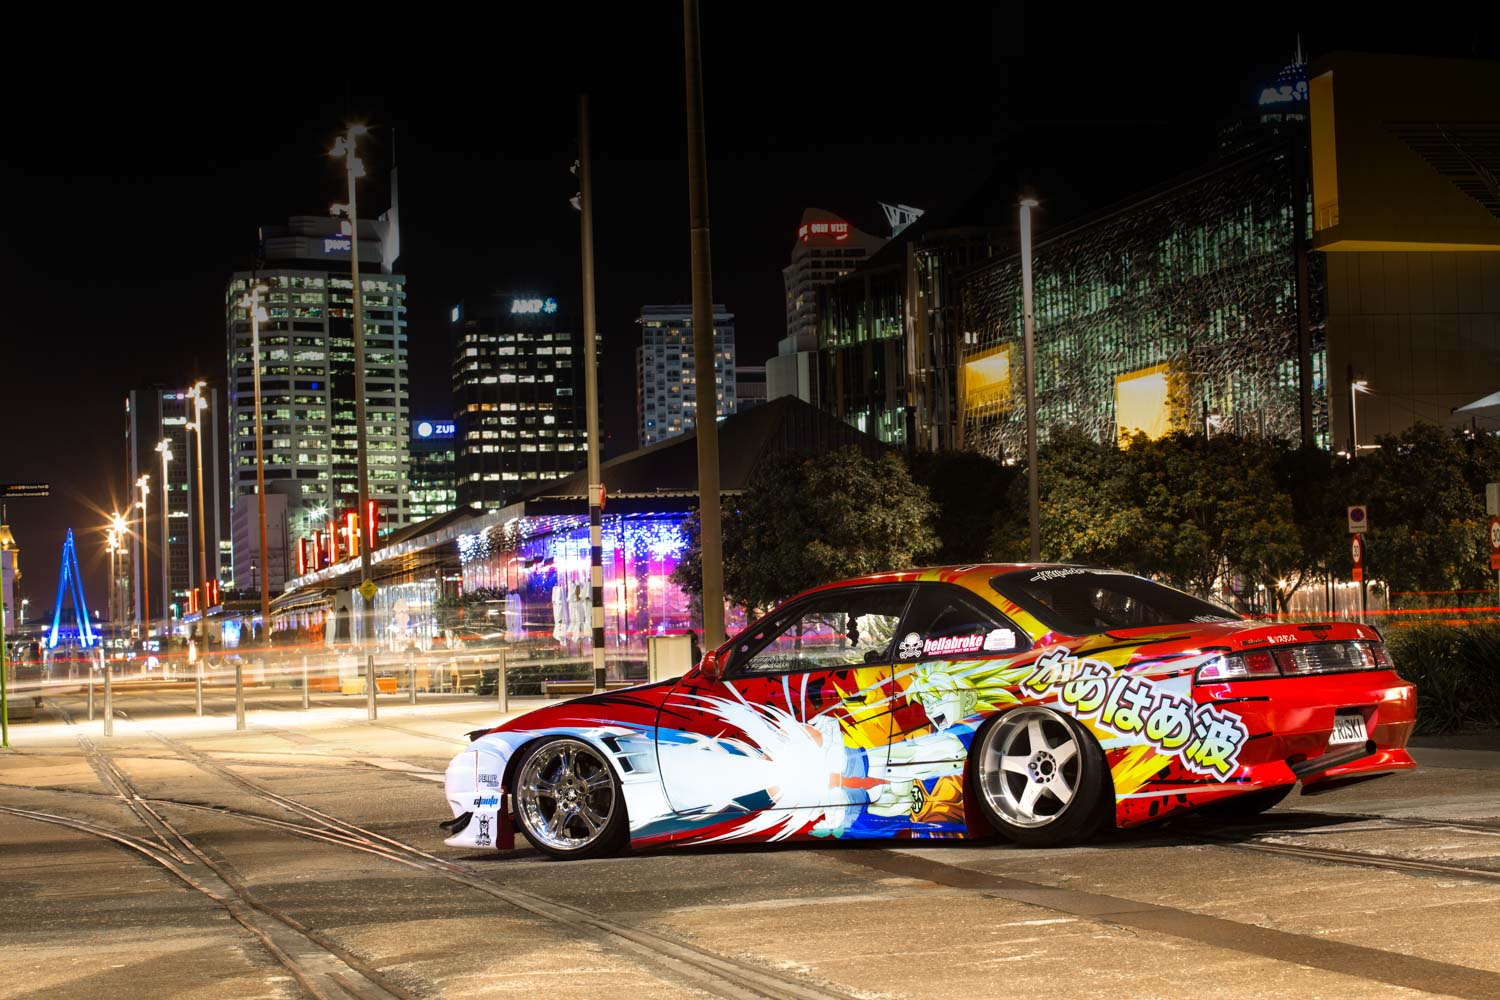 Kamehameha bryces dragon ball z themed 180sx fronted s14